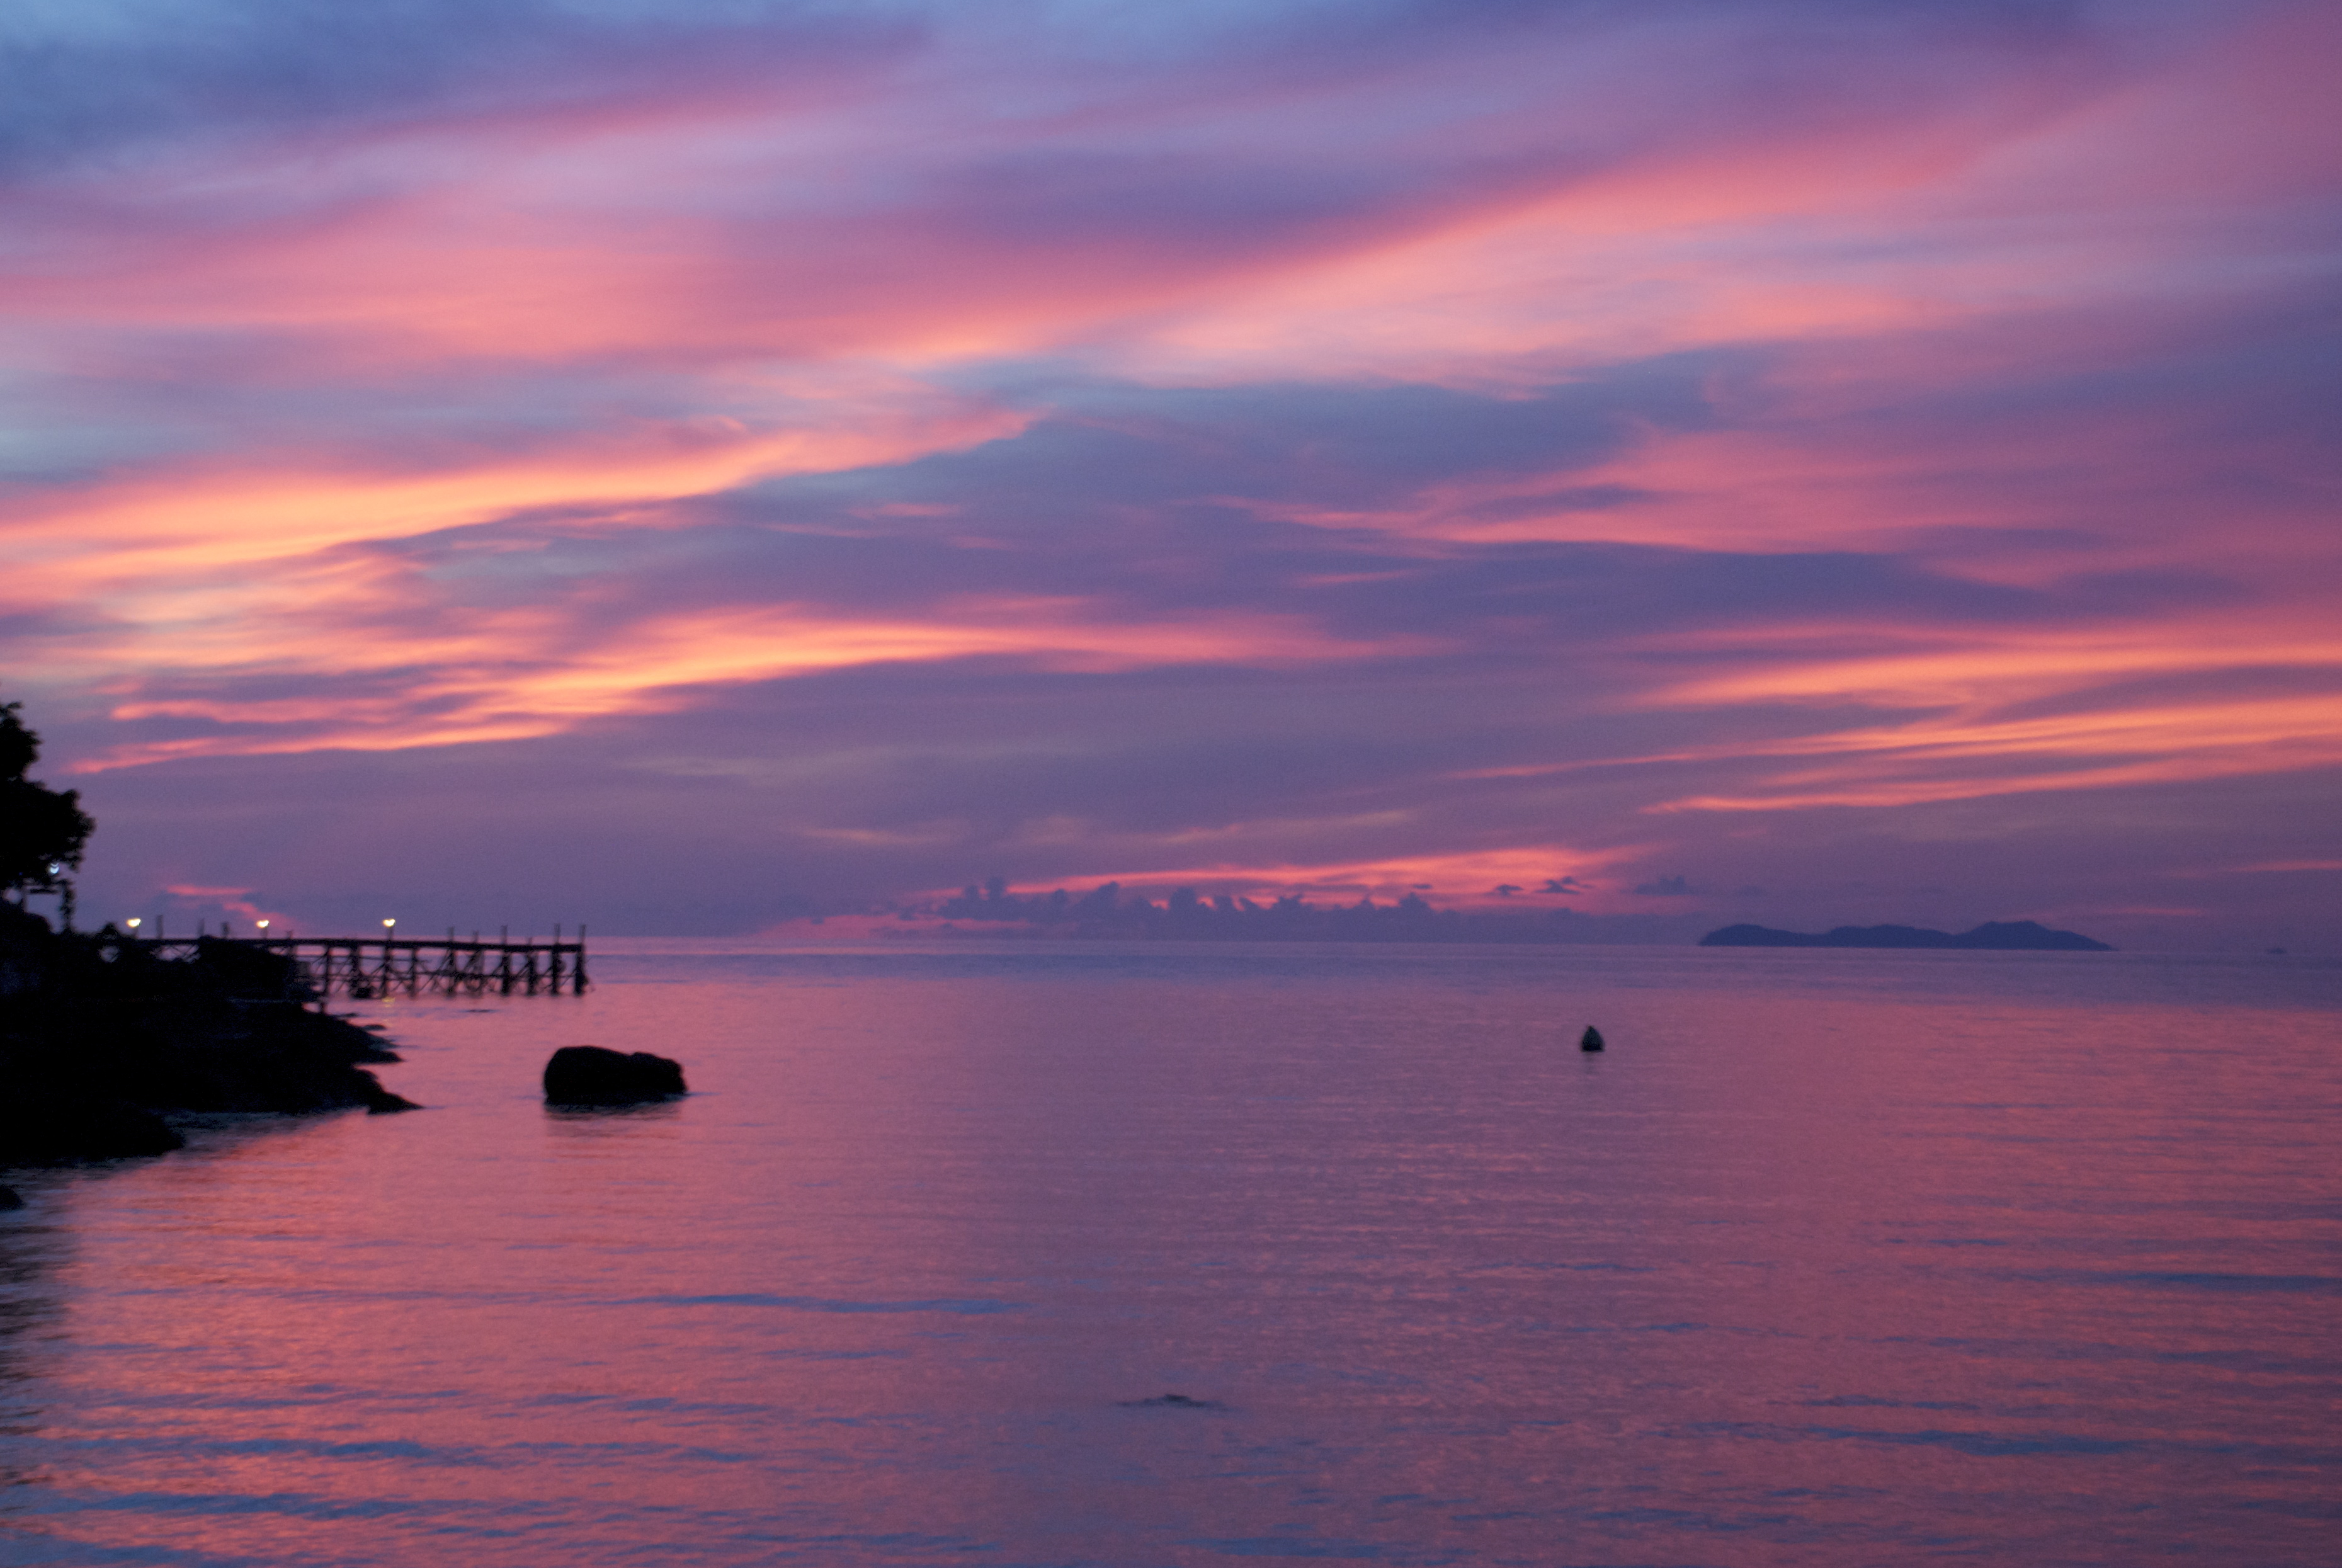 Pink sunset on the island of Koh Kood Thailand wallpapers and images 3719x2490